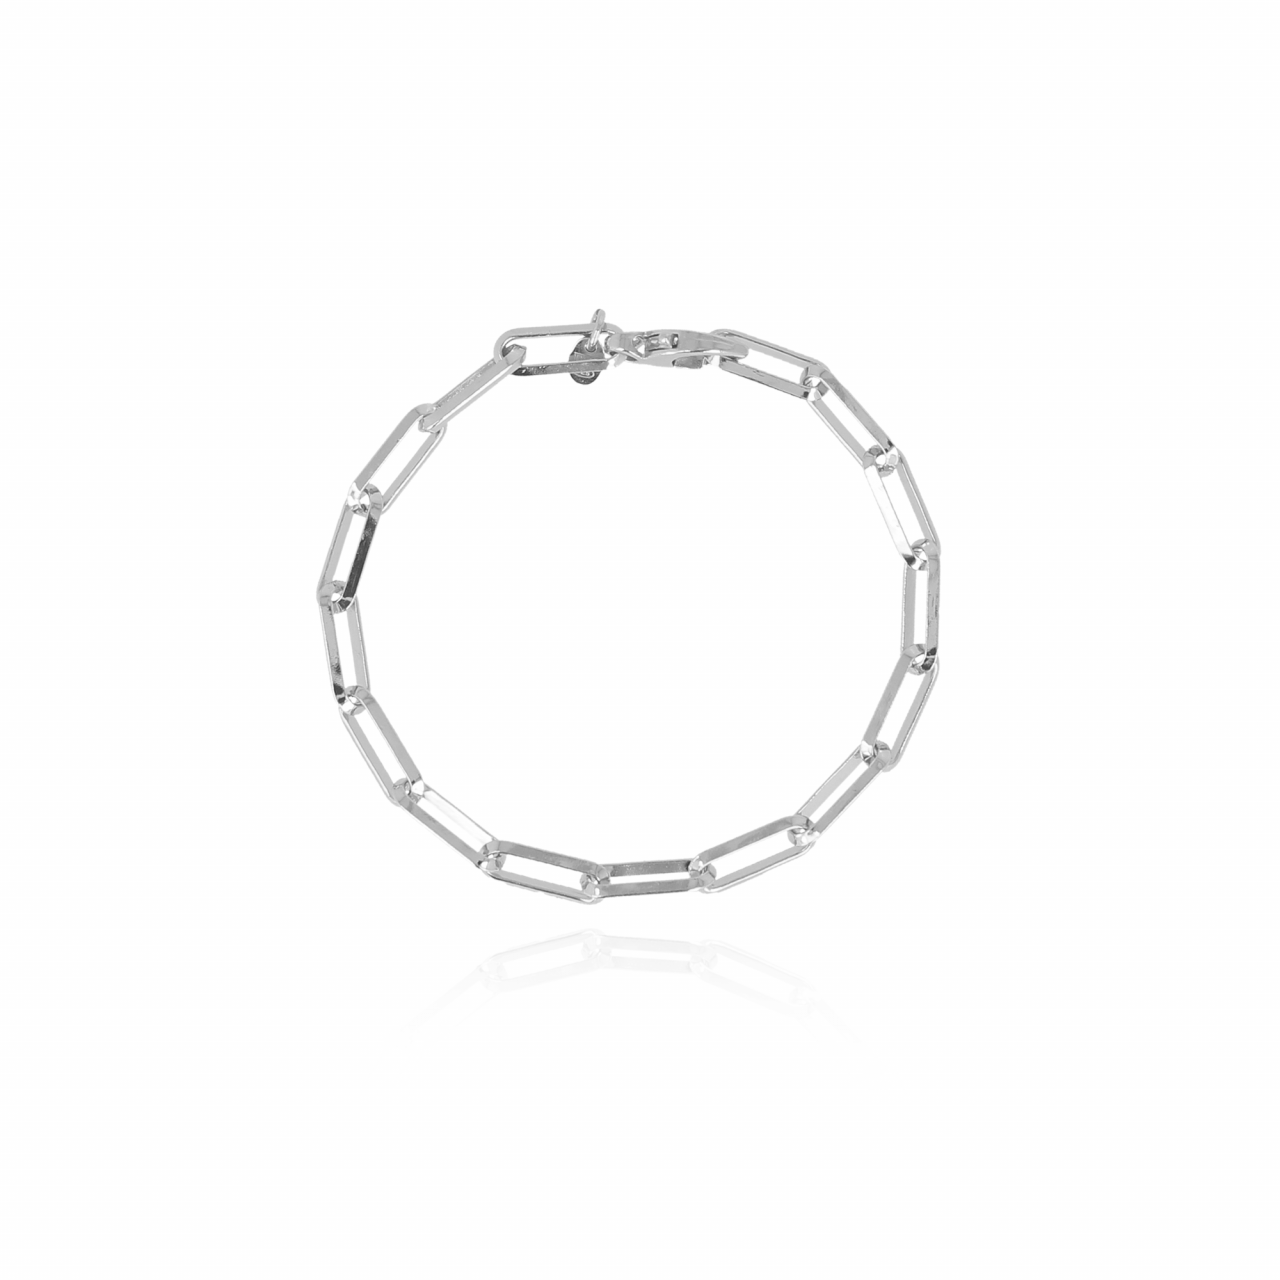 Silberfarbenes Closed-Forever M-Glieder-Armband